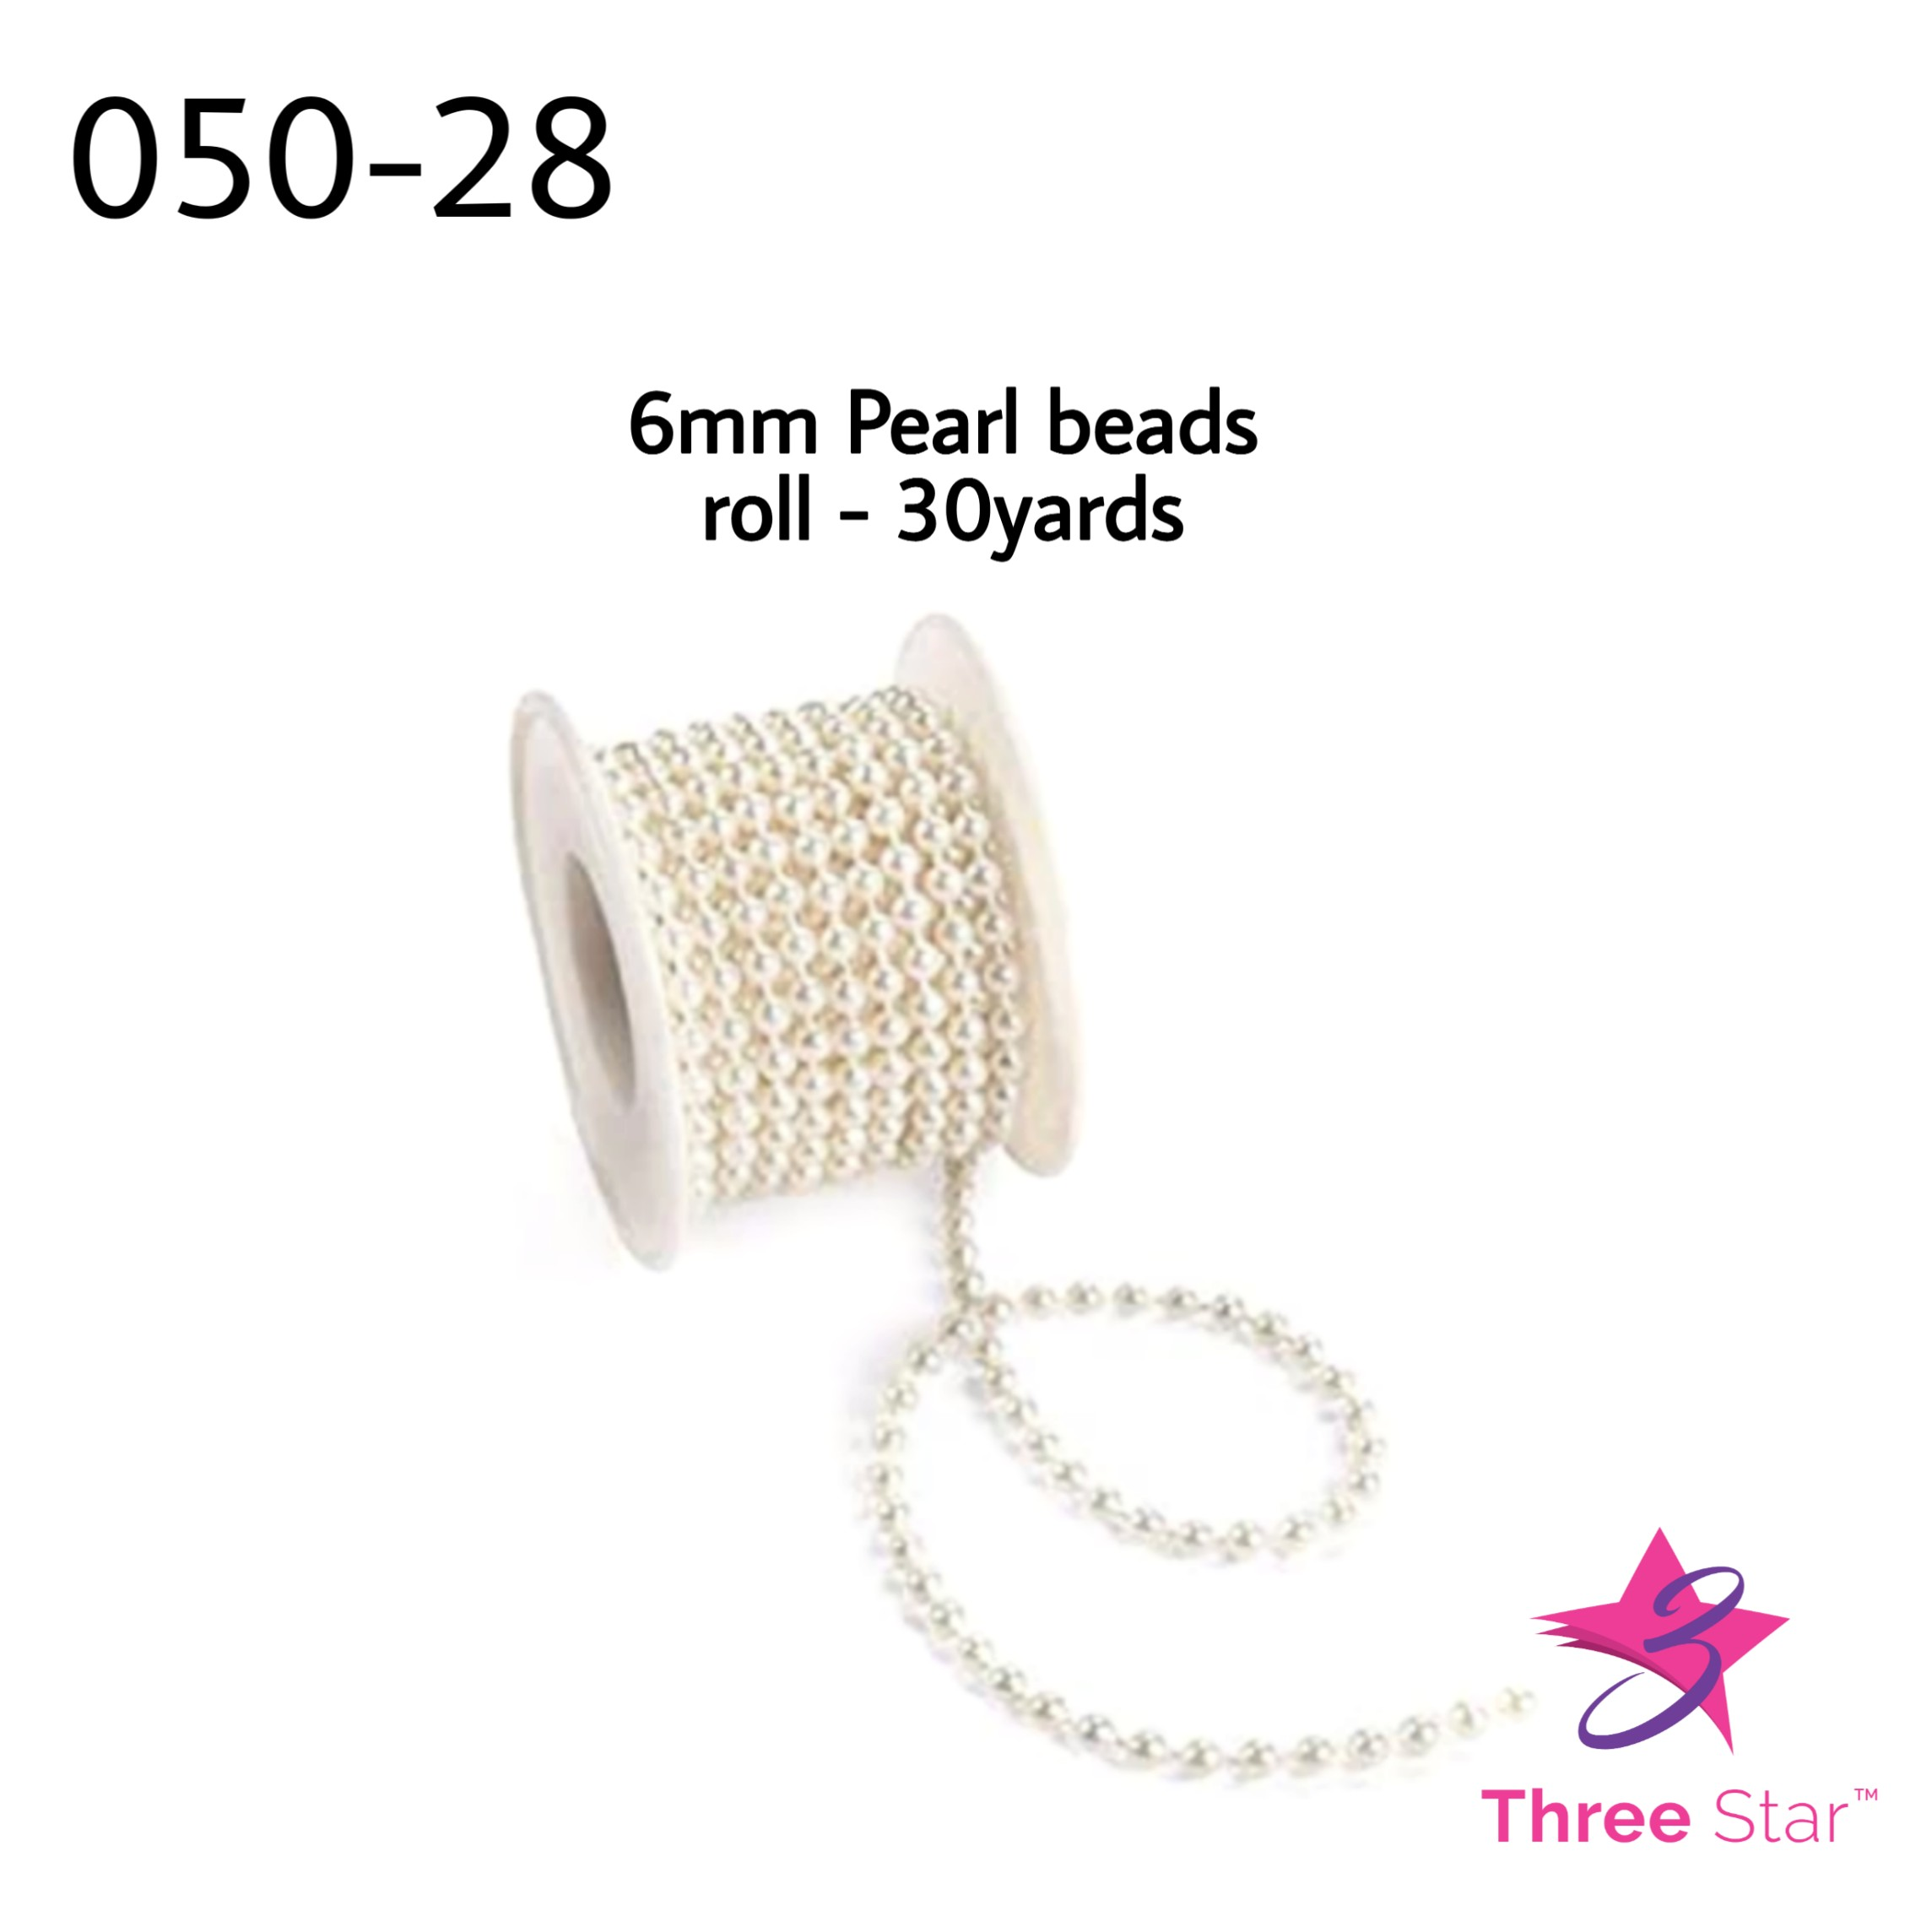 6mm Pearl bead 30 yards